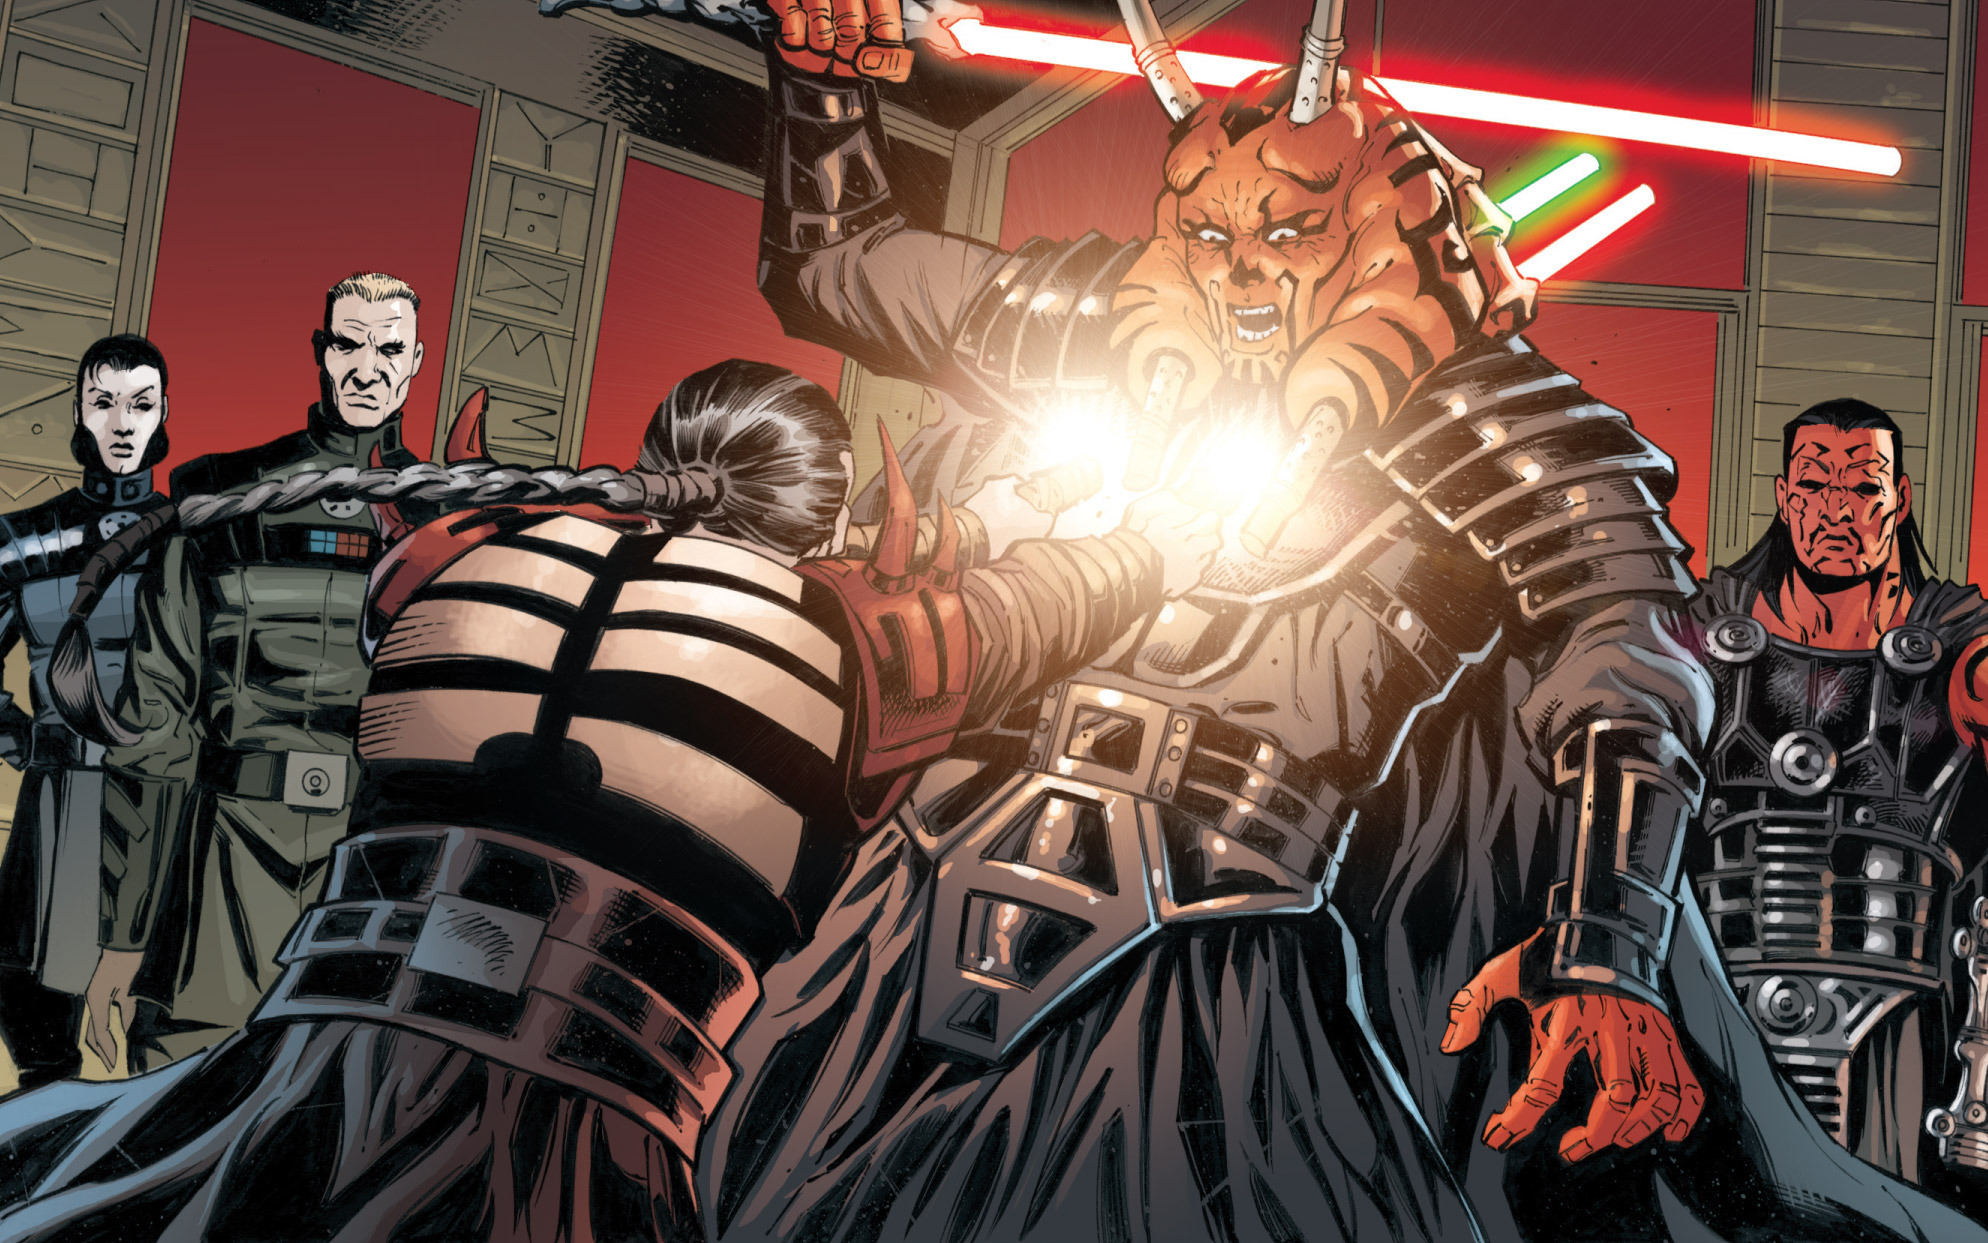 Darth Krayt vs Darth Malgus Darth Krayt Kills Darth